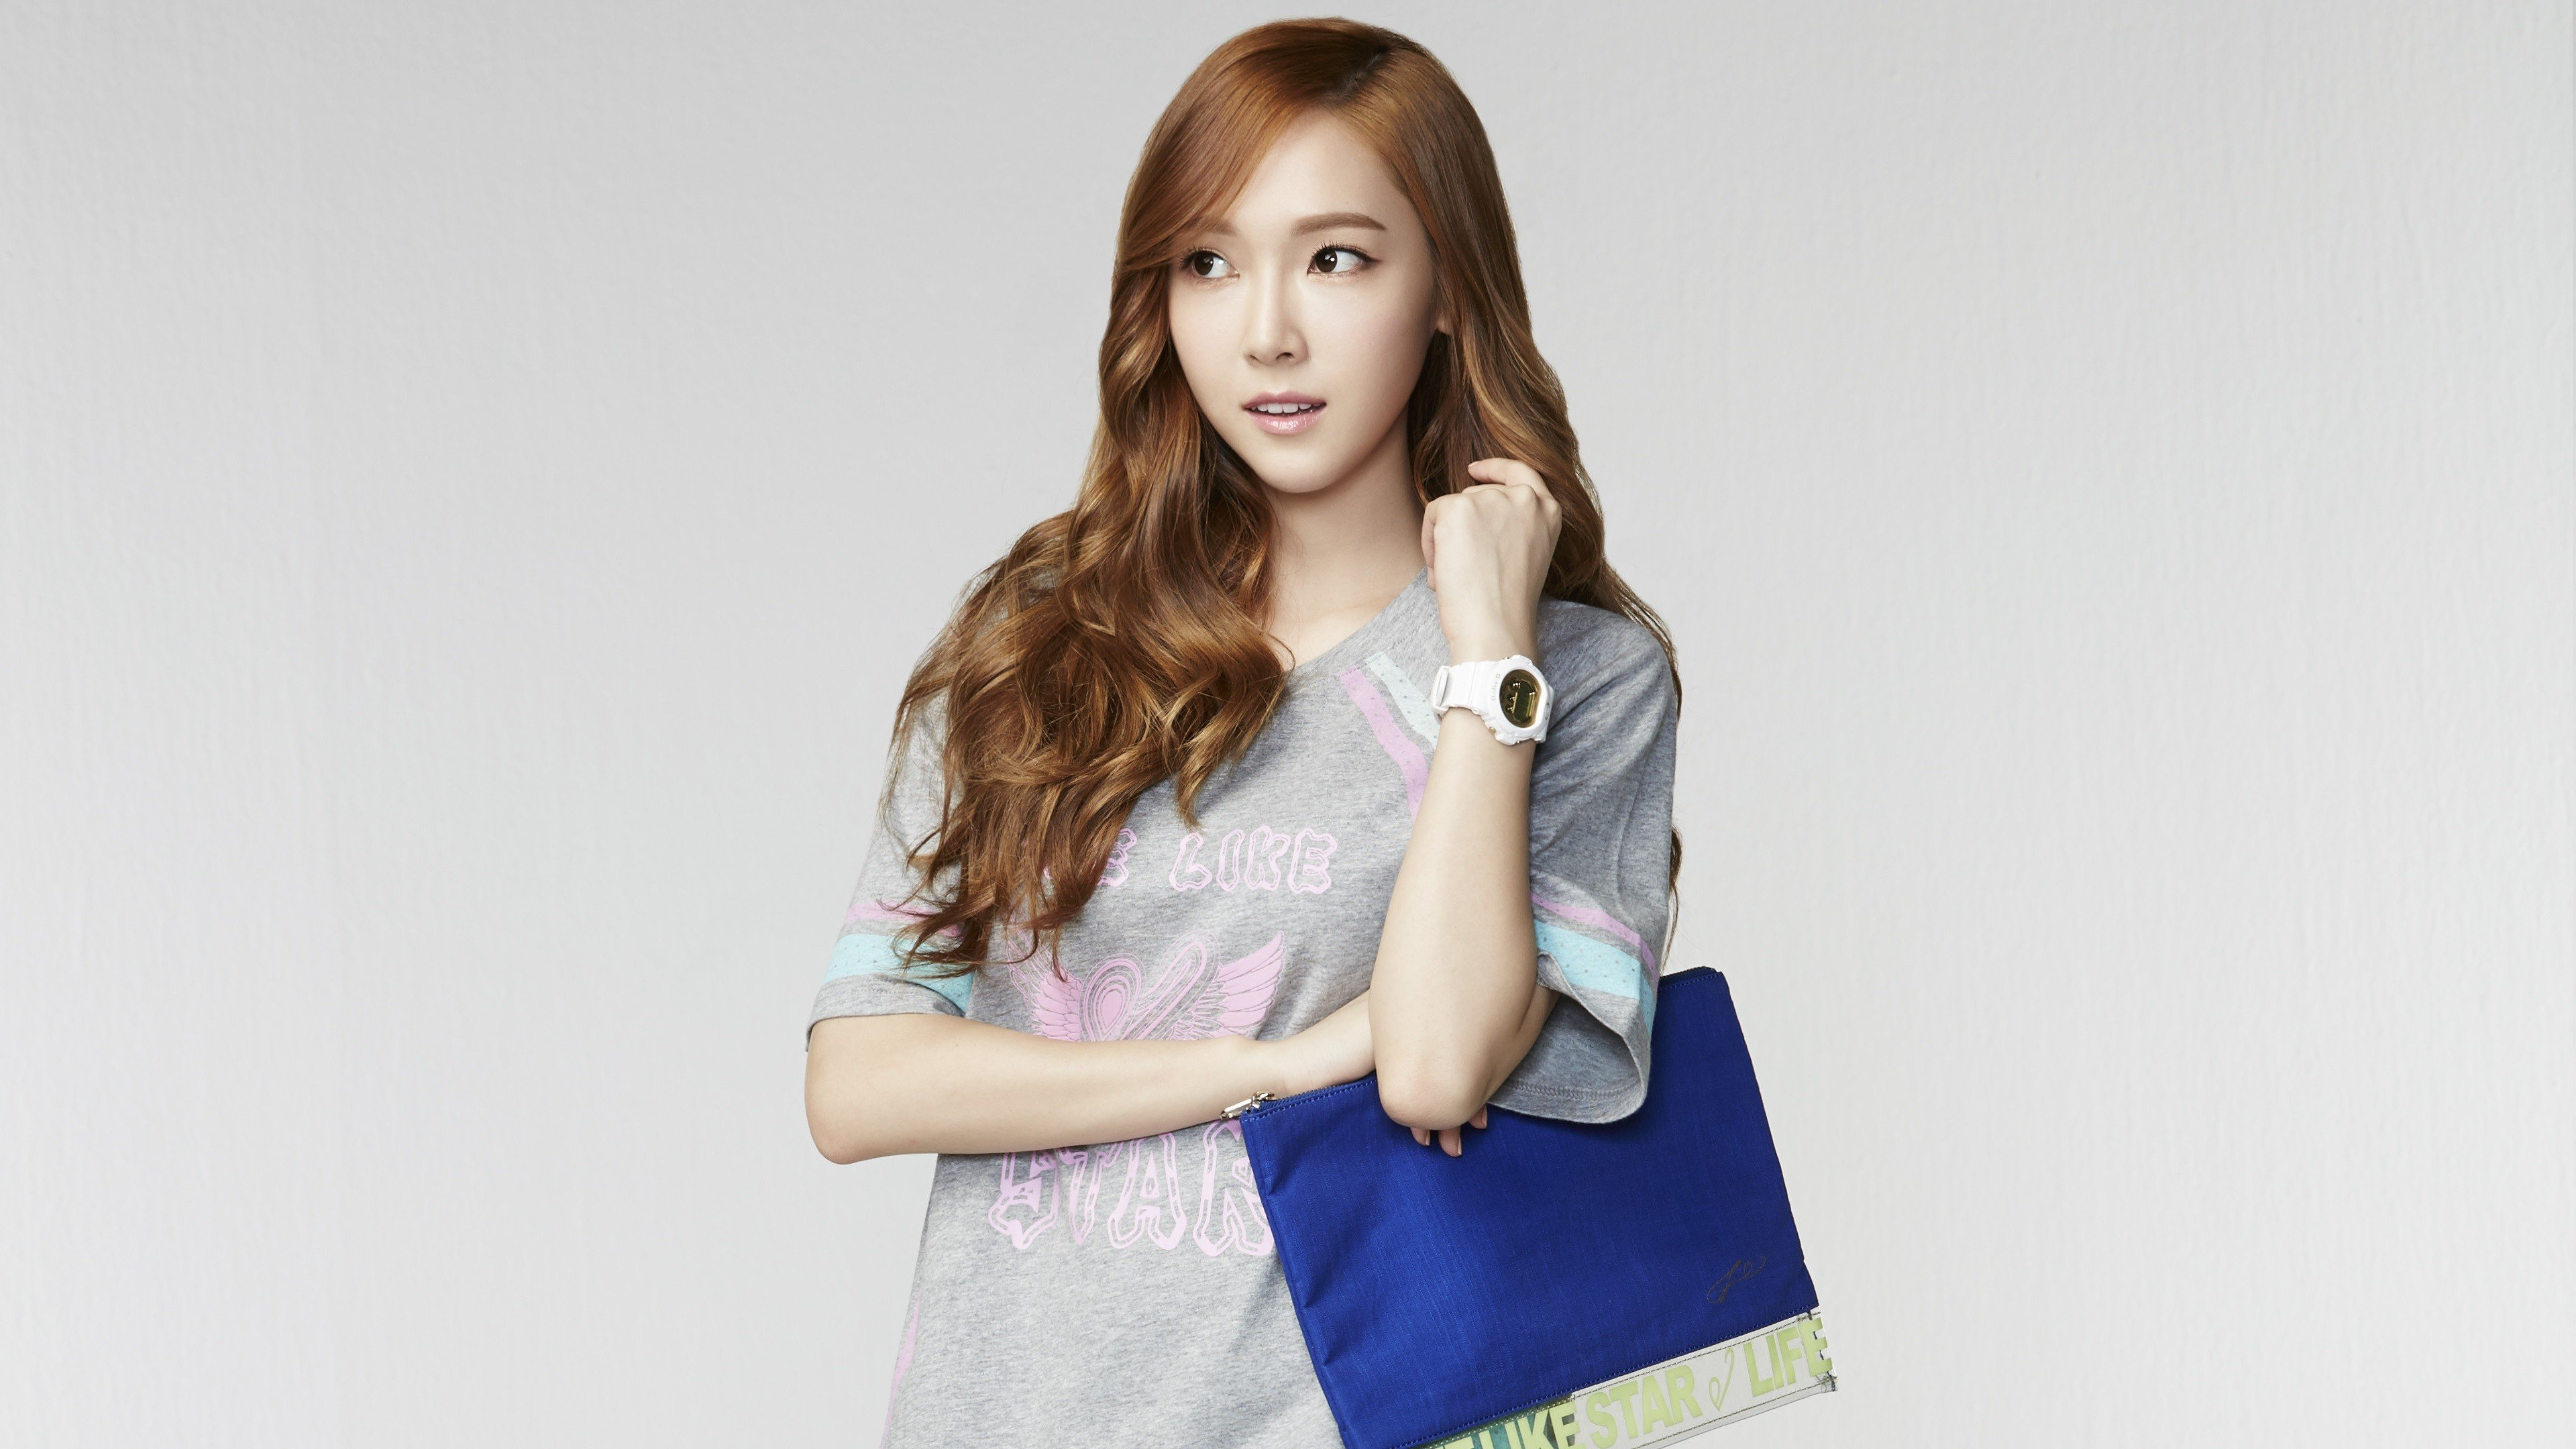 jessica jung widescreen wallpaper 55758